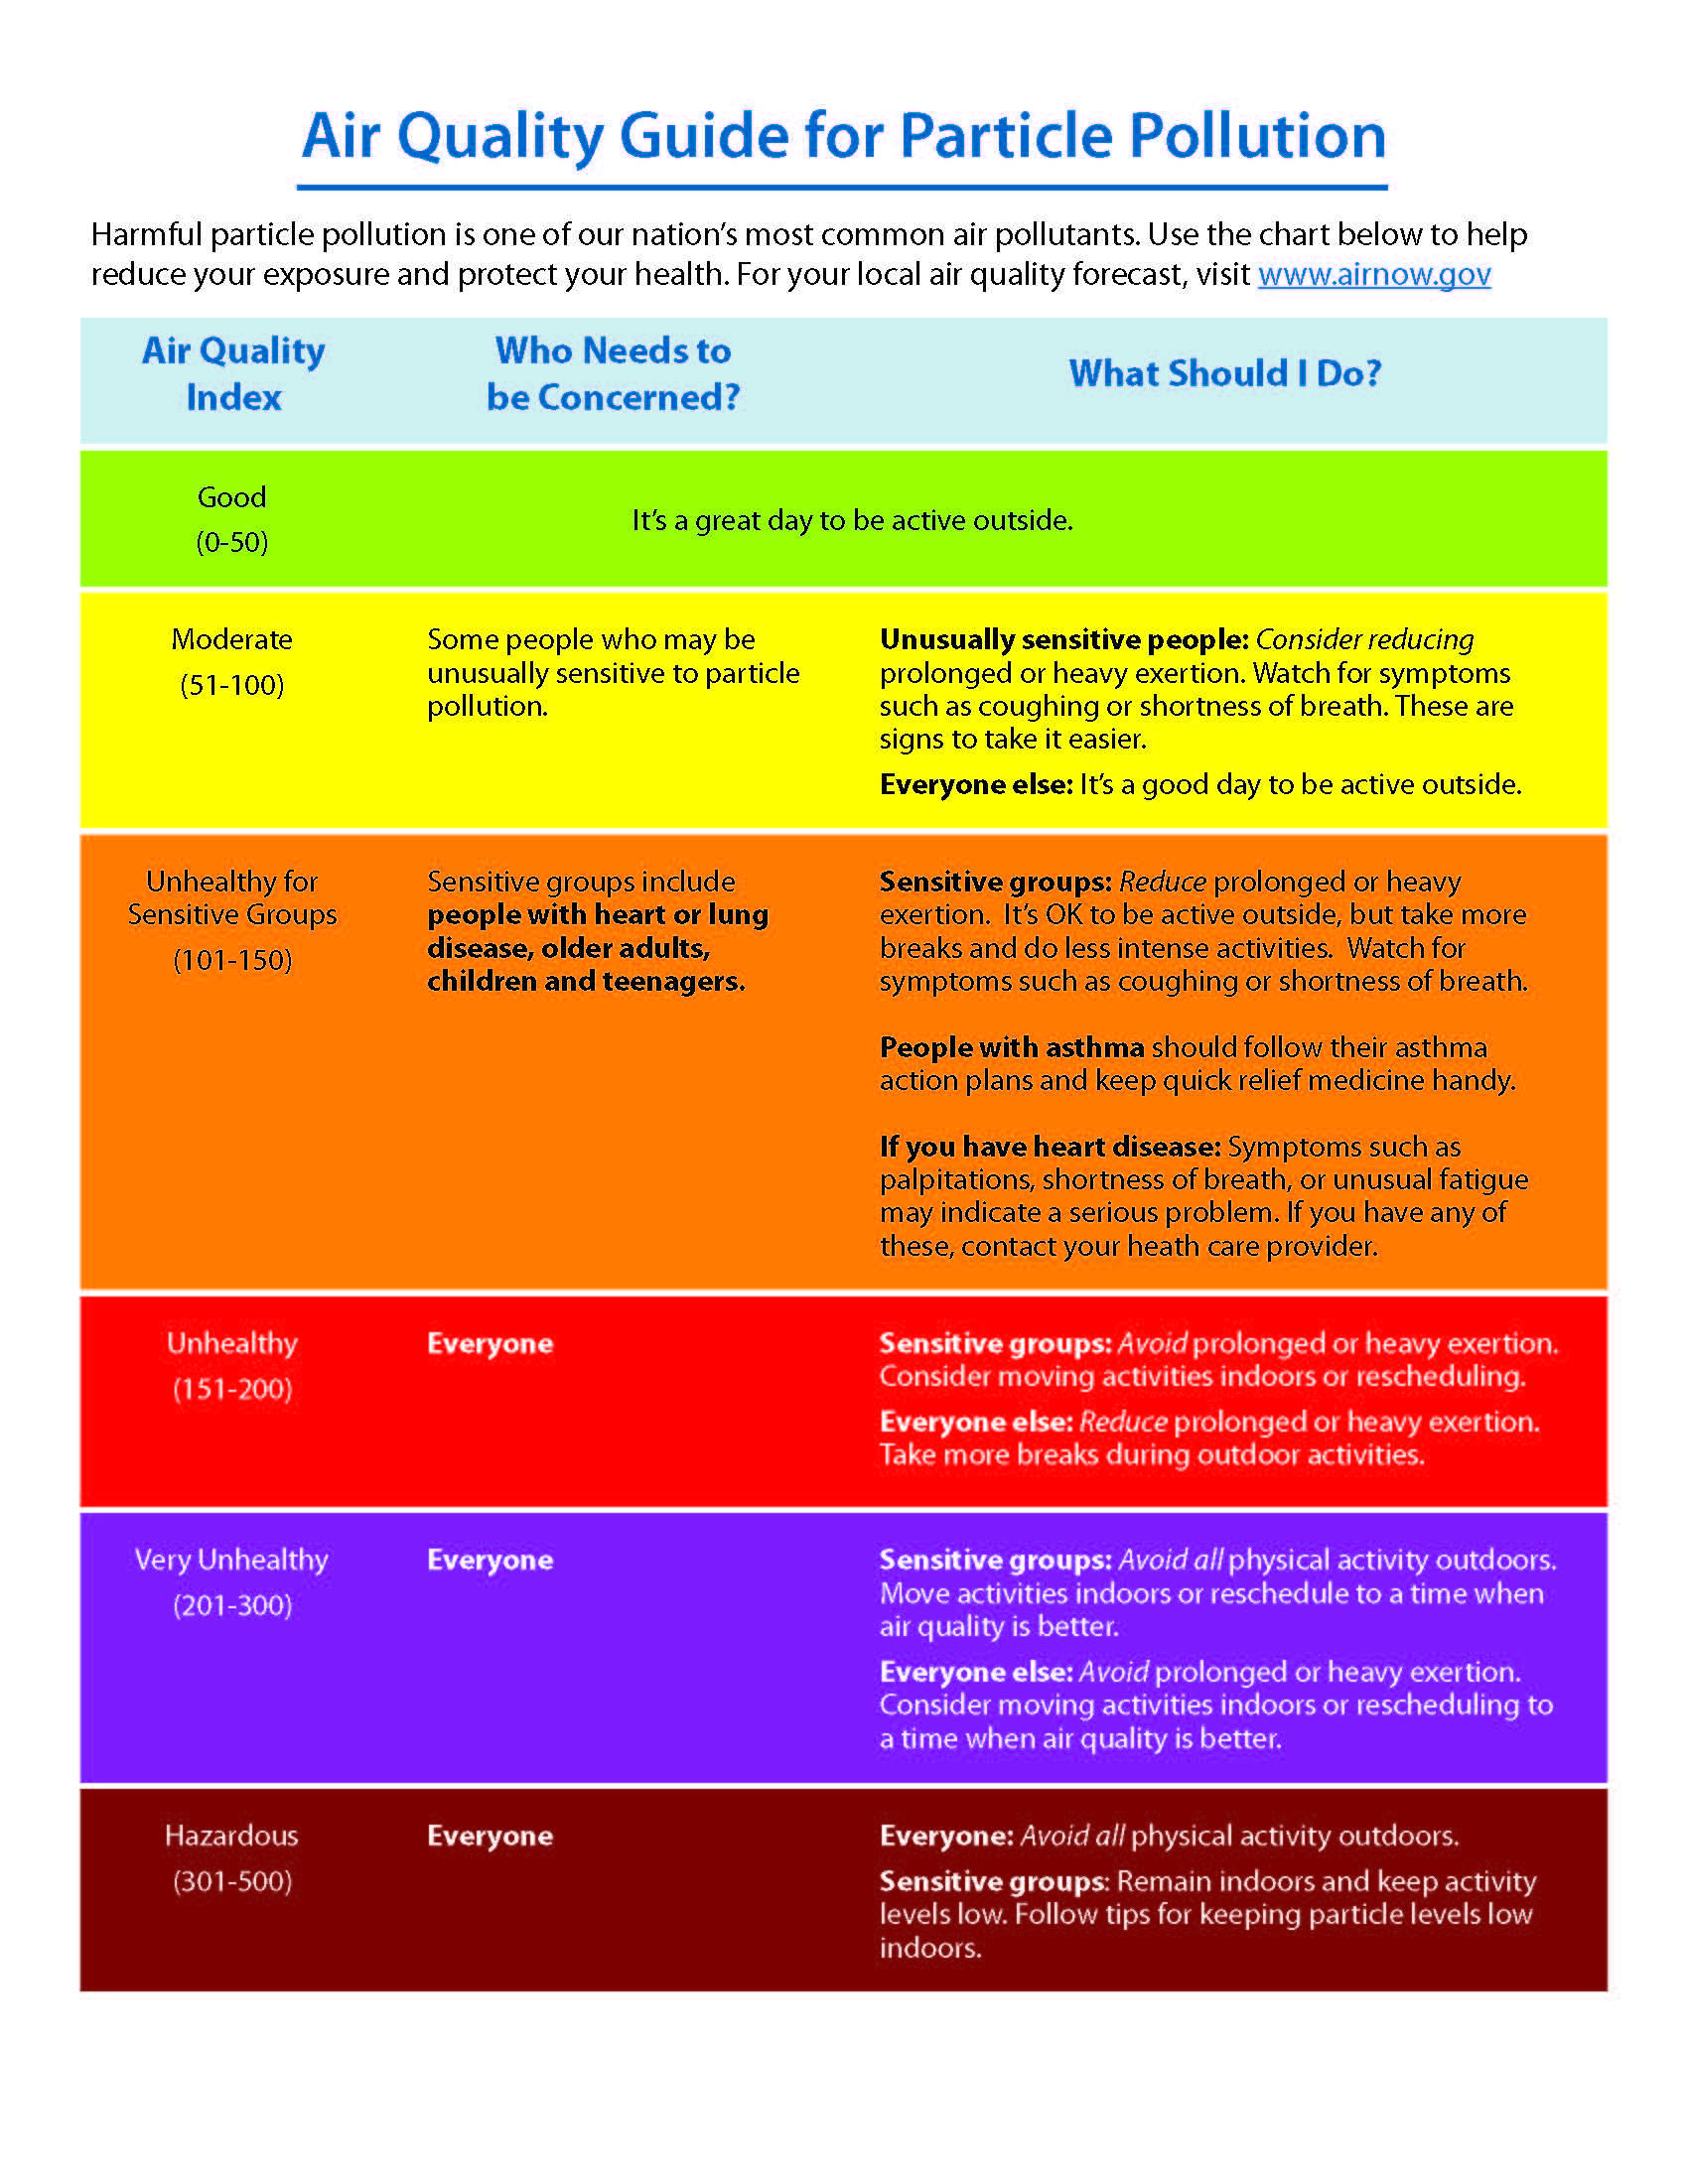 Air Quality Index Chart